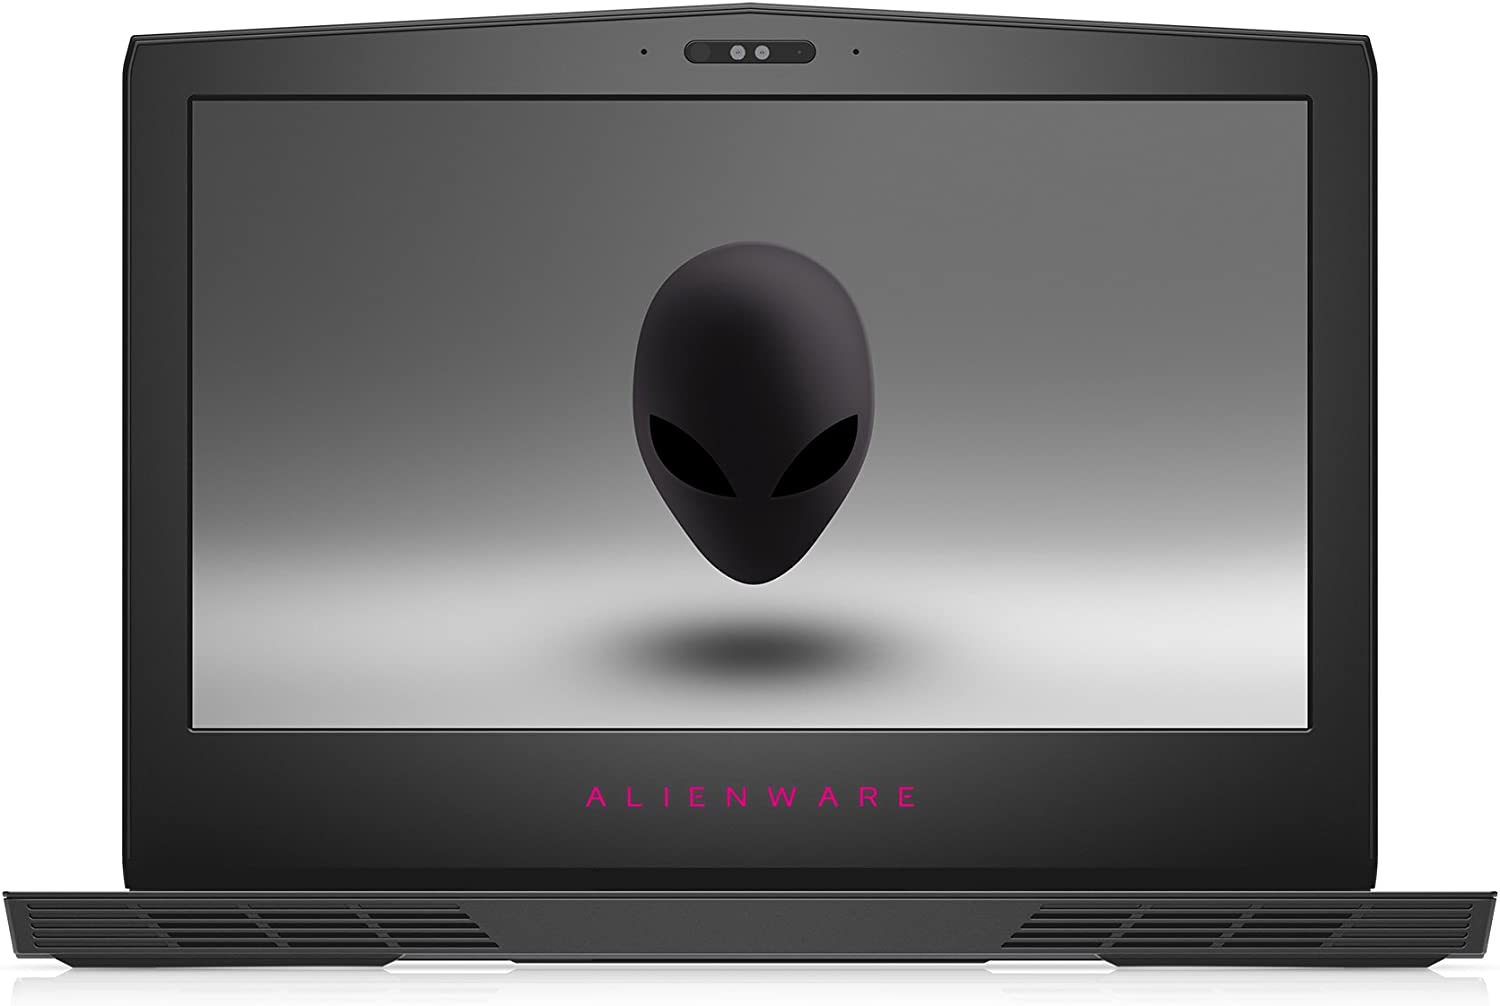 "Alienware AW15R3-5246SLV-PUS 15.6"" Gaming Laptop (7th Generation Intel Core i5, 8GB RAM, 1TB HDD, Silver) VR Ready with NVIDIA GTX 1060"